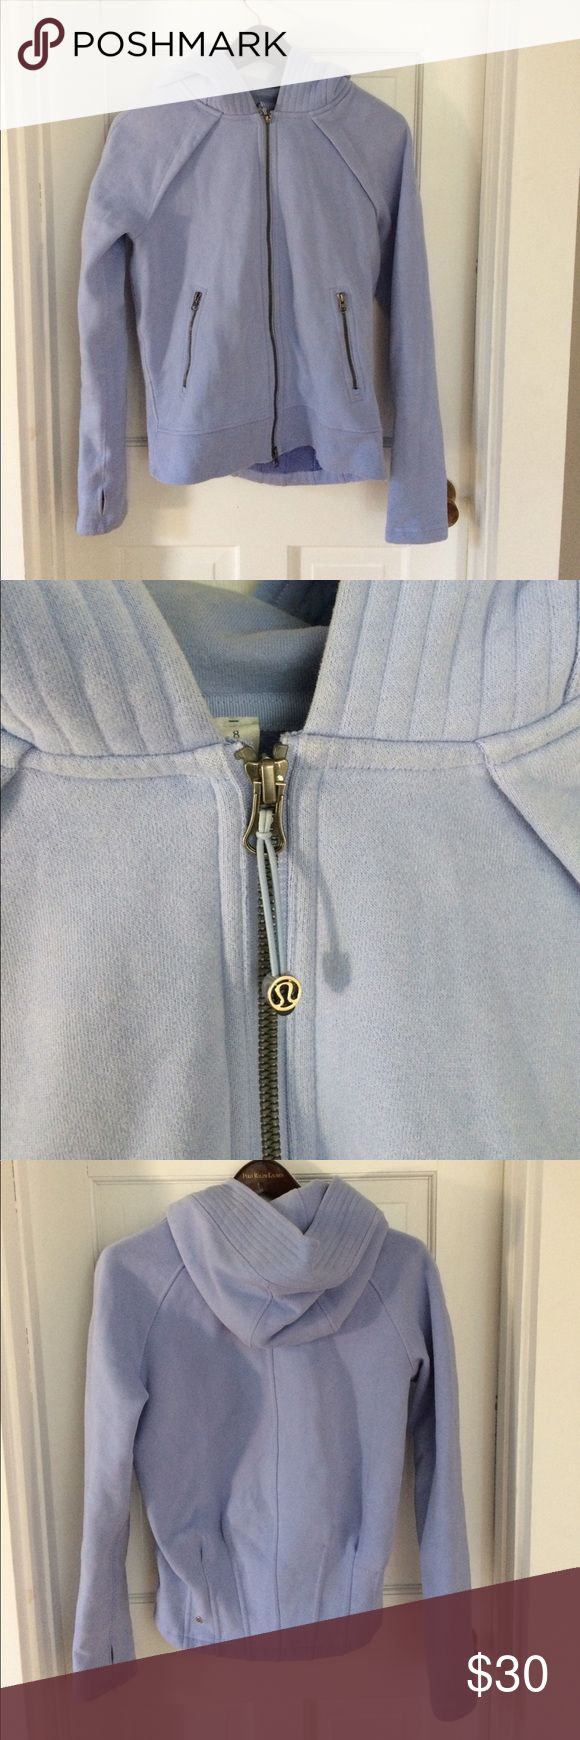 Sz 8 lululemon hoodie blue thumb holes zip blue Sz 8. Minor signs of wear, some wear around thumb holes (pictured) overall nice condition. Thick warm hoodie. lululemon athletica Other